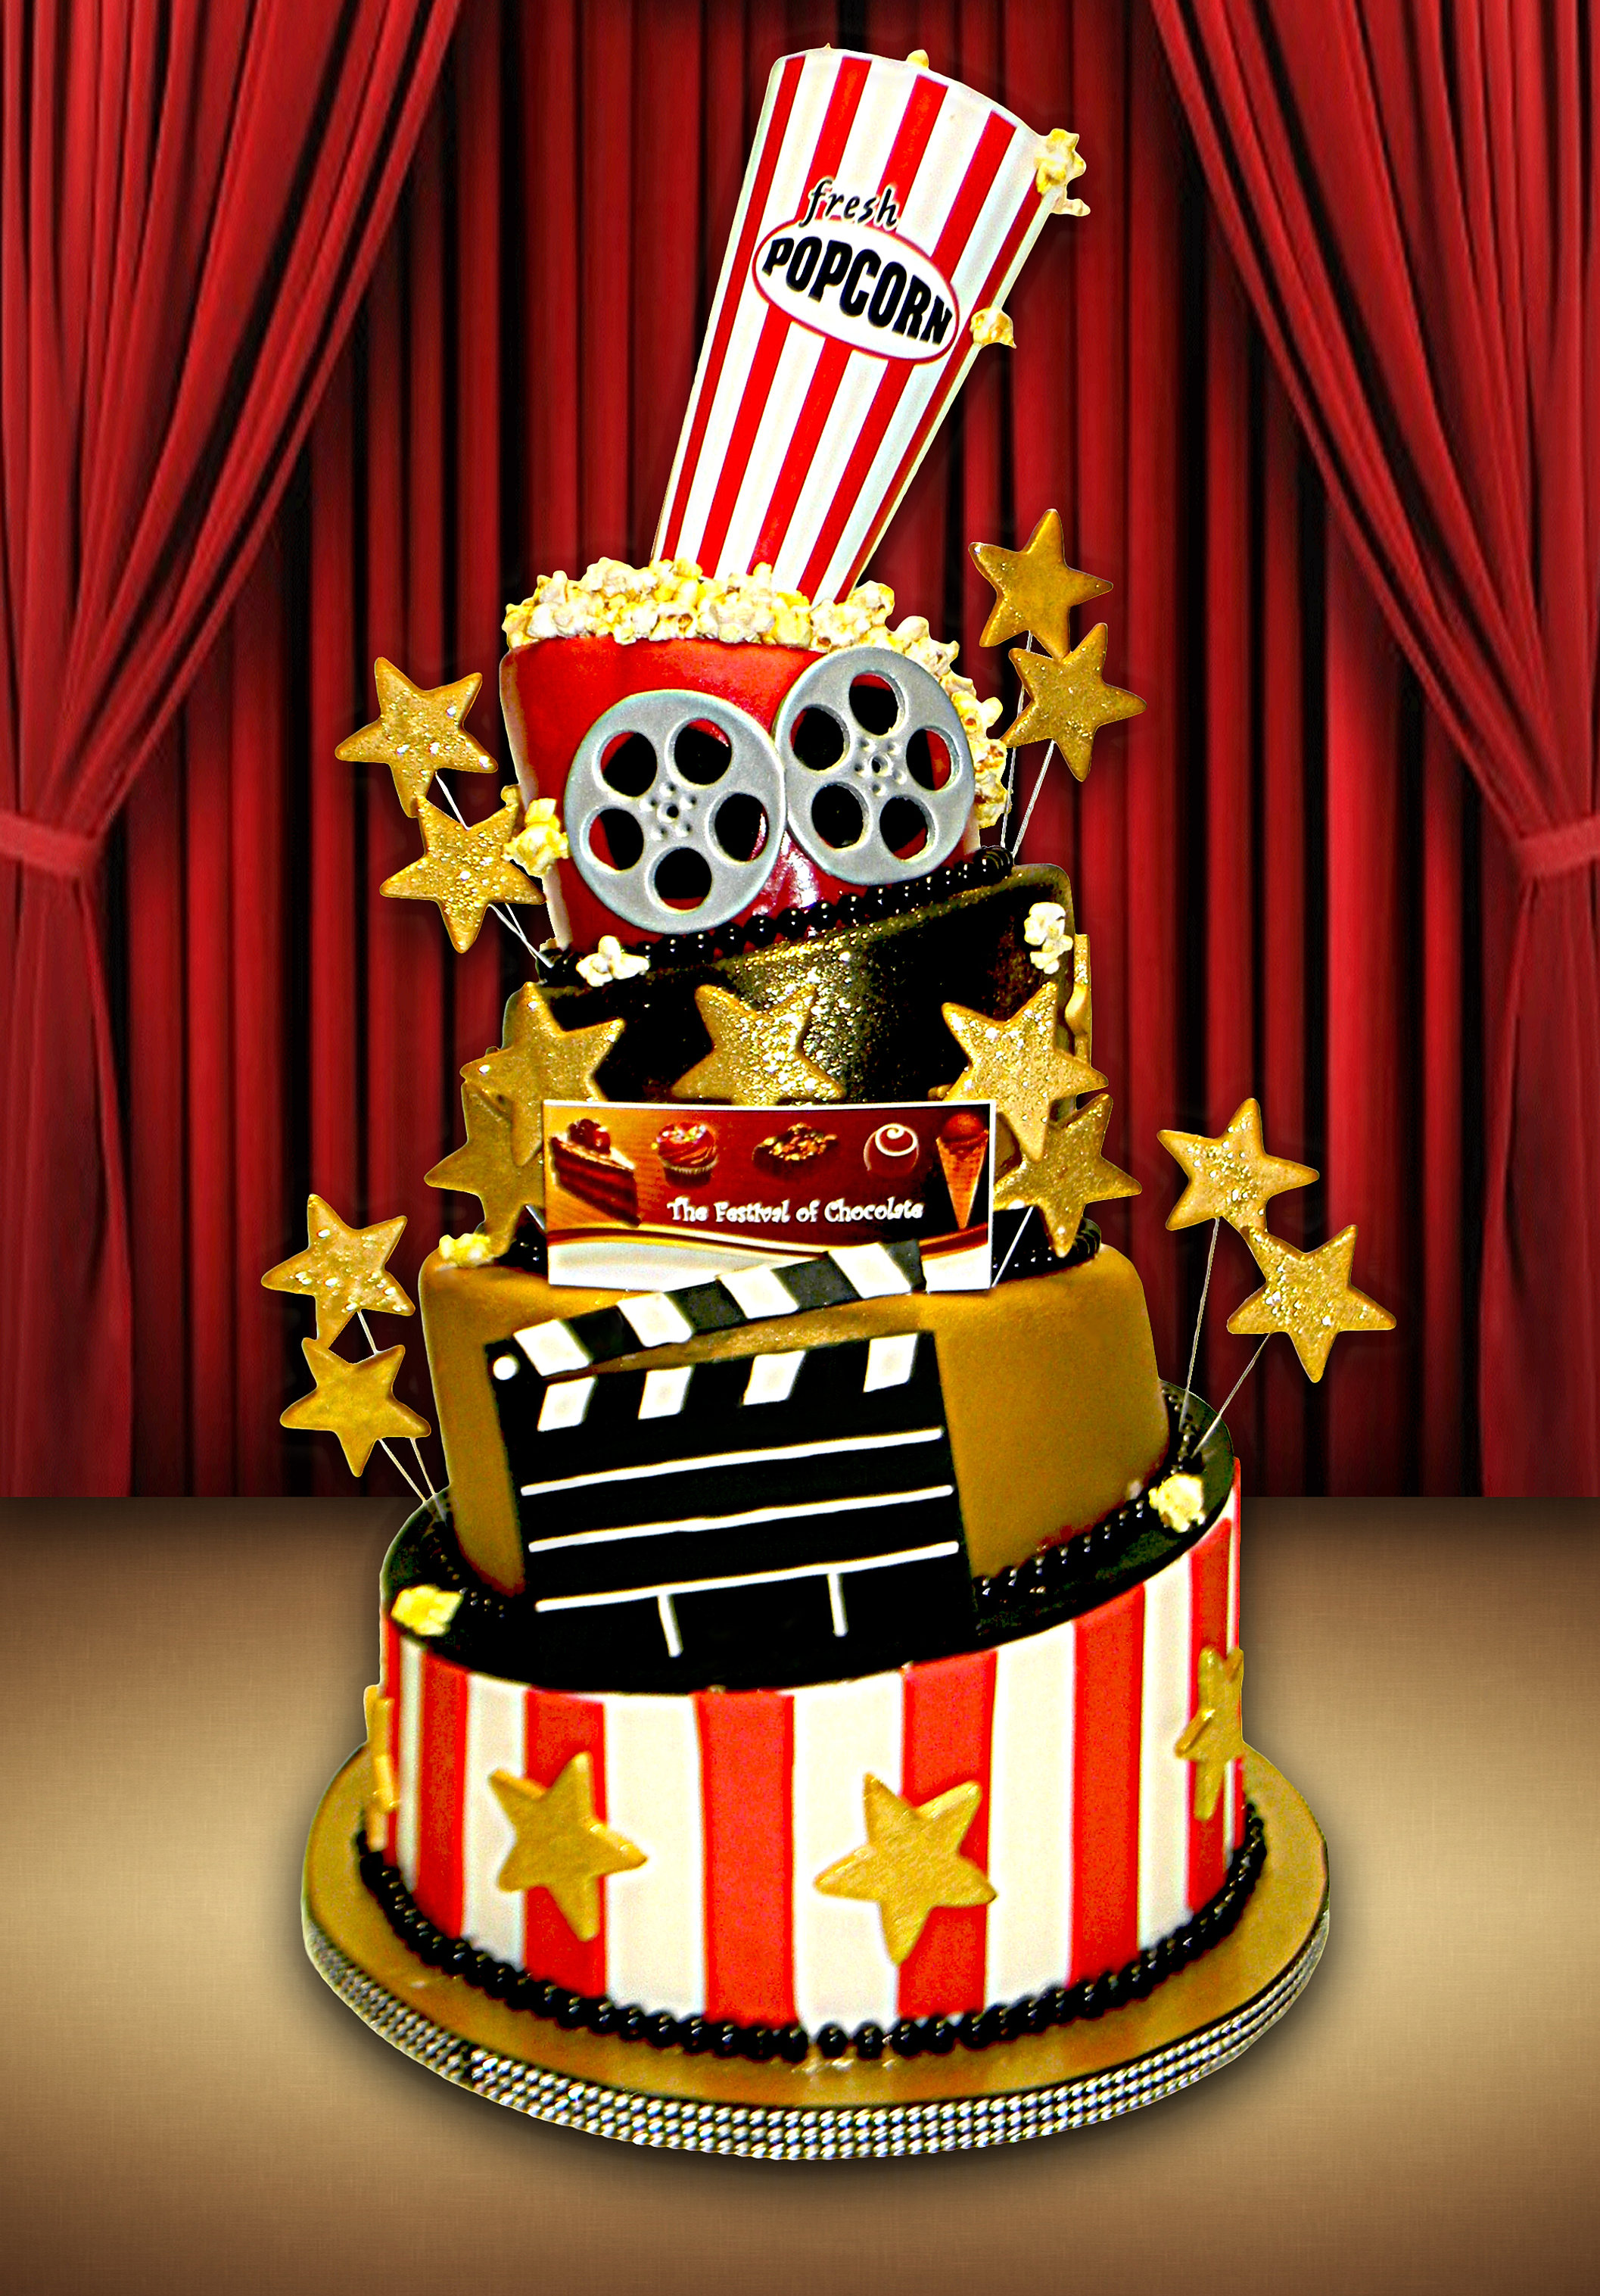 Outrageous Cakes Tampa Florida Rated Best Cakes In Tampa Bay